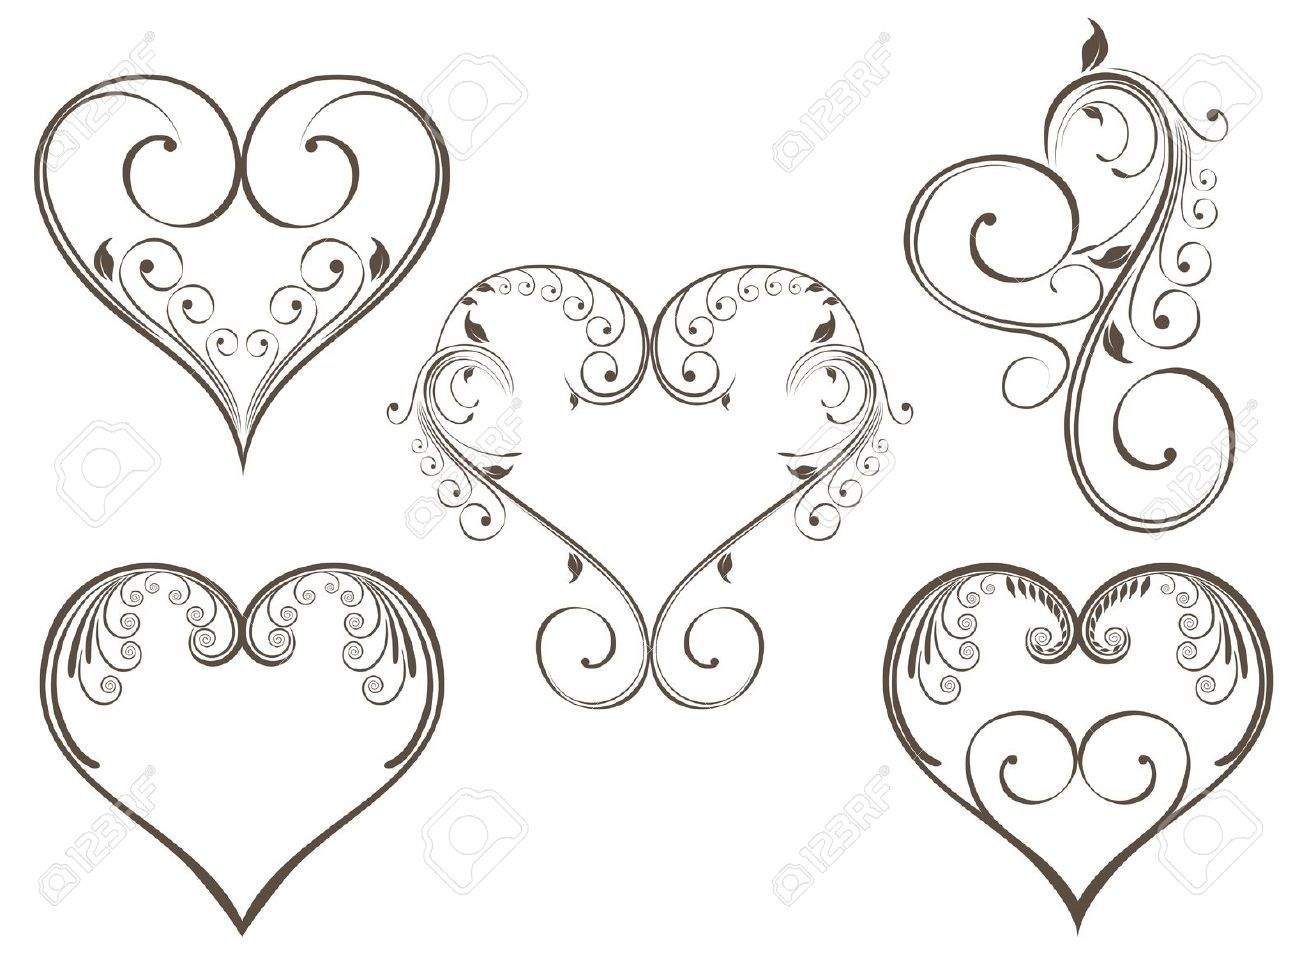 heart designs to color google search zentangles pinterest